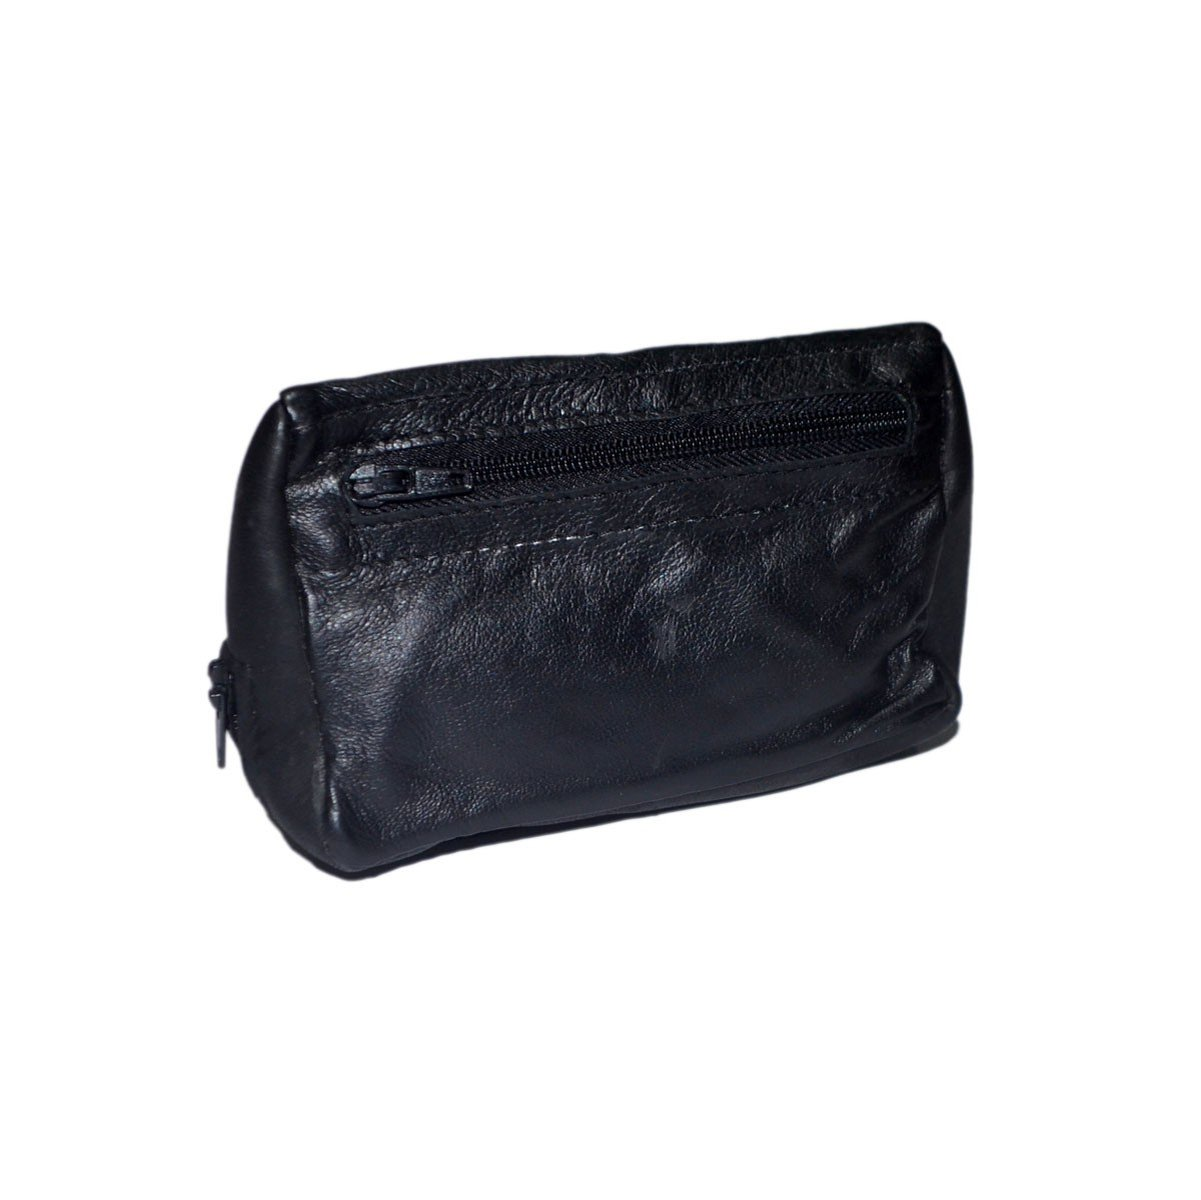 Dr Plumb Combination Leather Tobacco Pouch with Square Corners GTR-Prestige Giftware Smoking Accessories P35515SQ